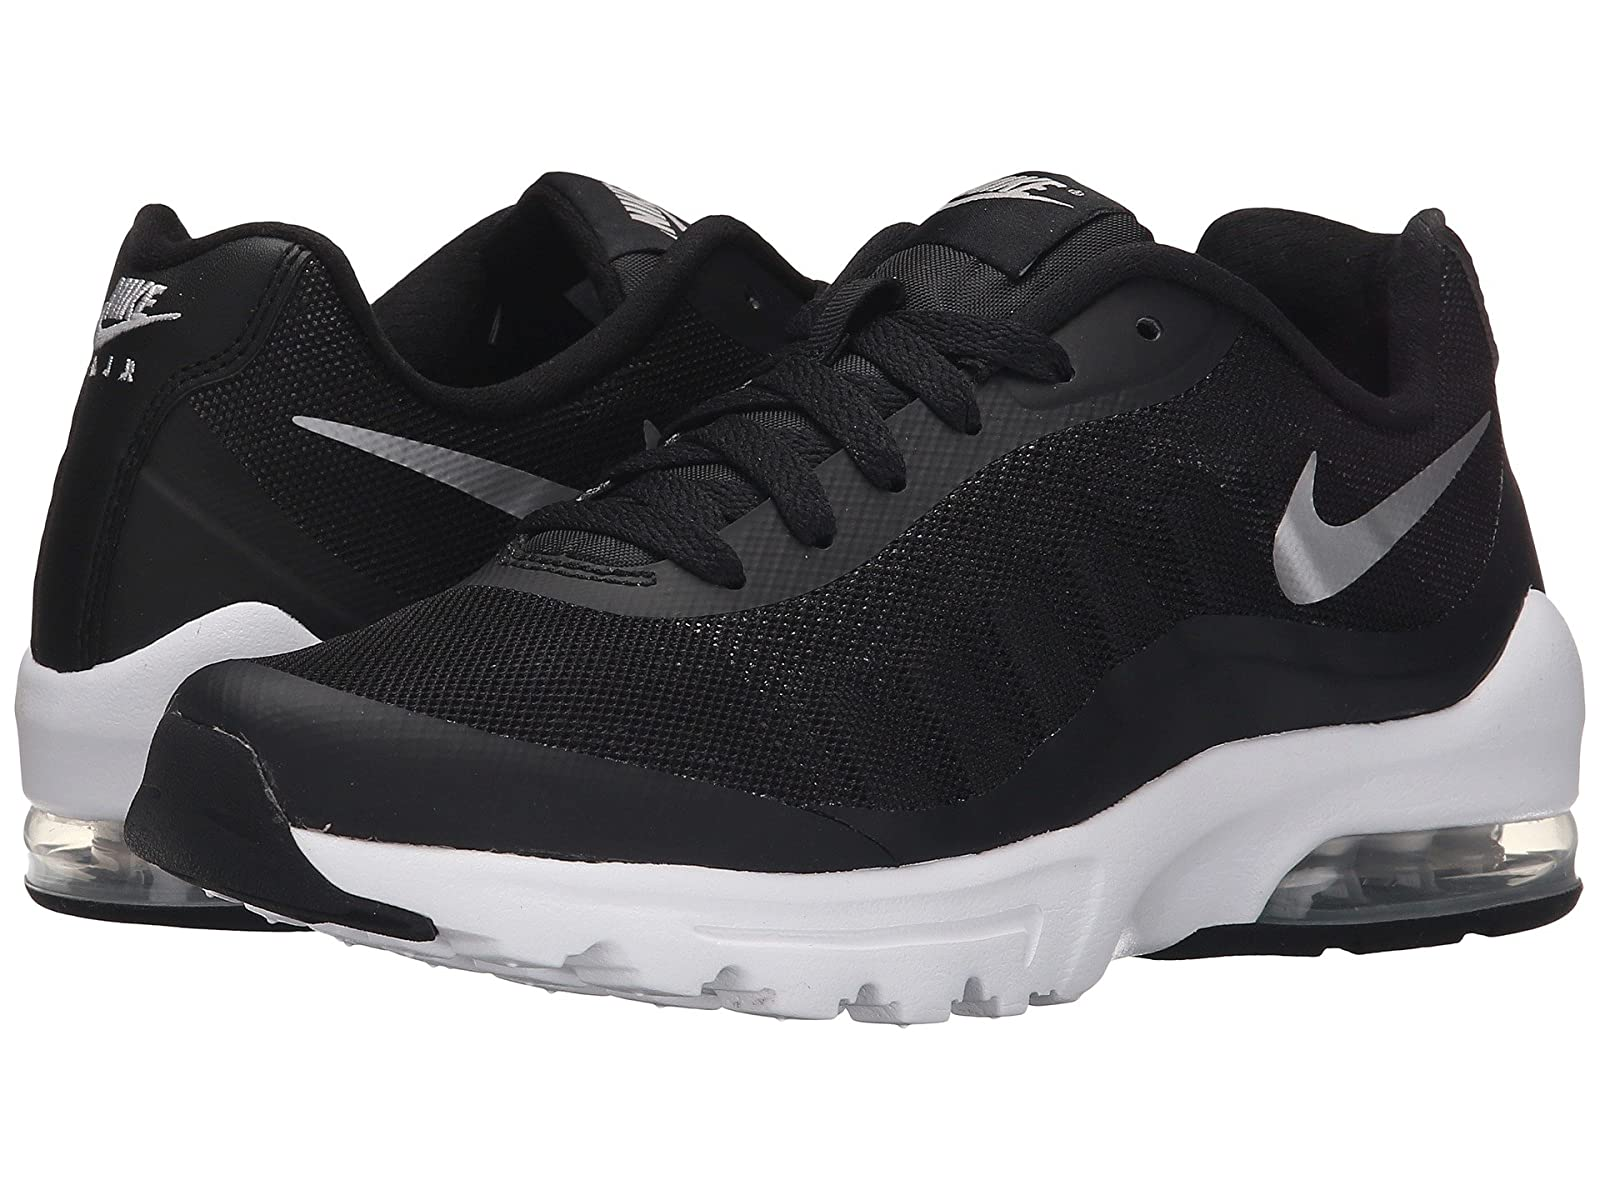 Nike Air Max InvigorAtmospheric grades have affordable shoes